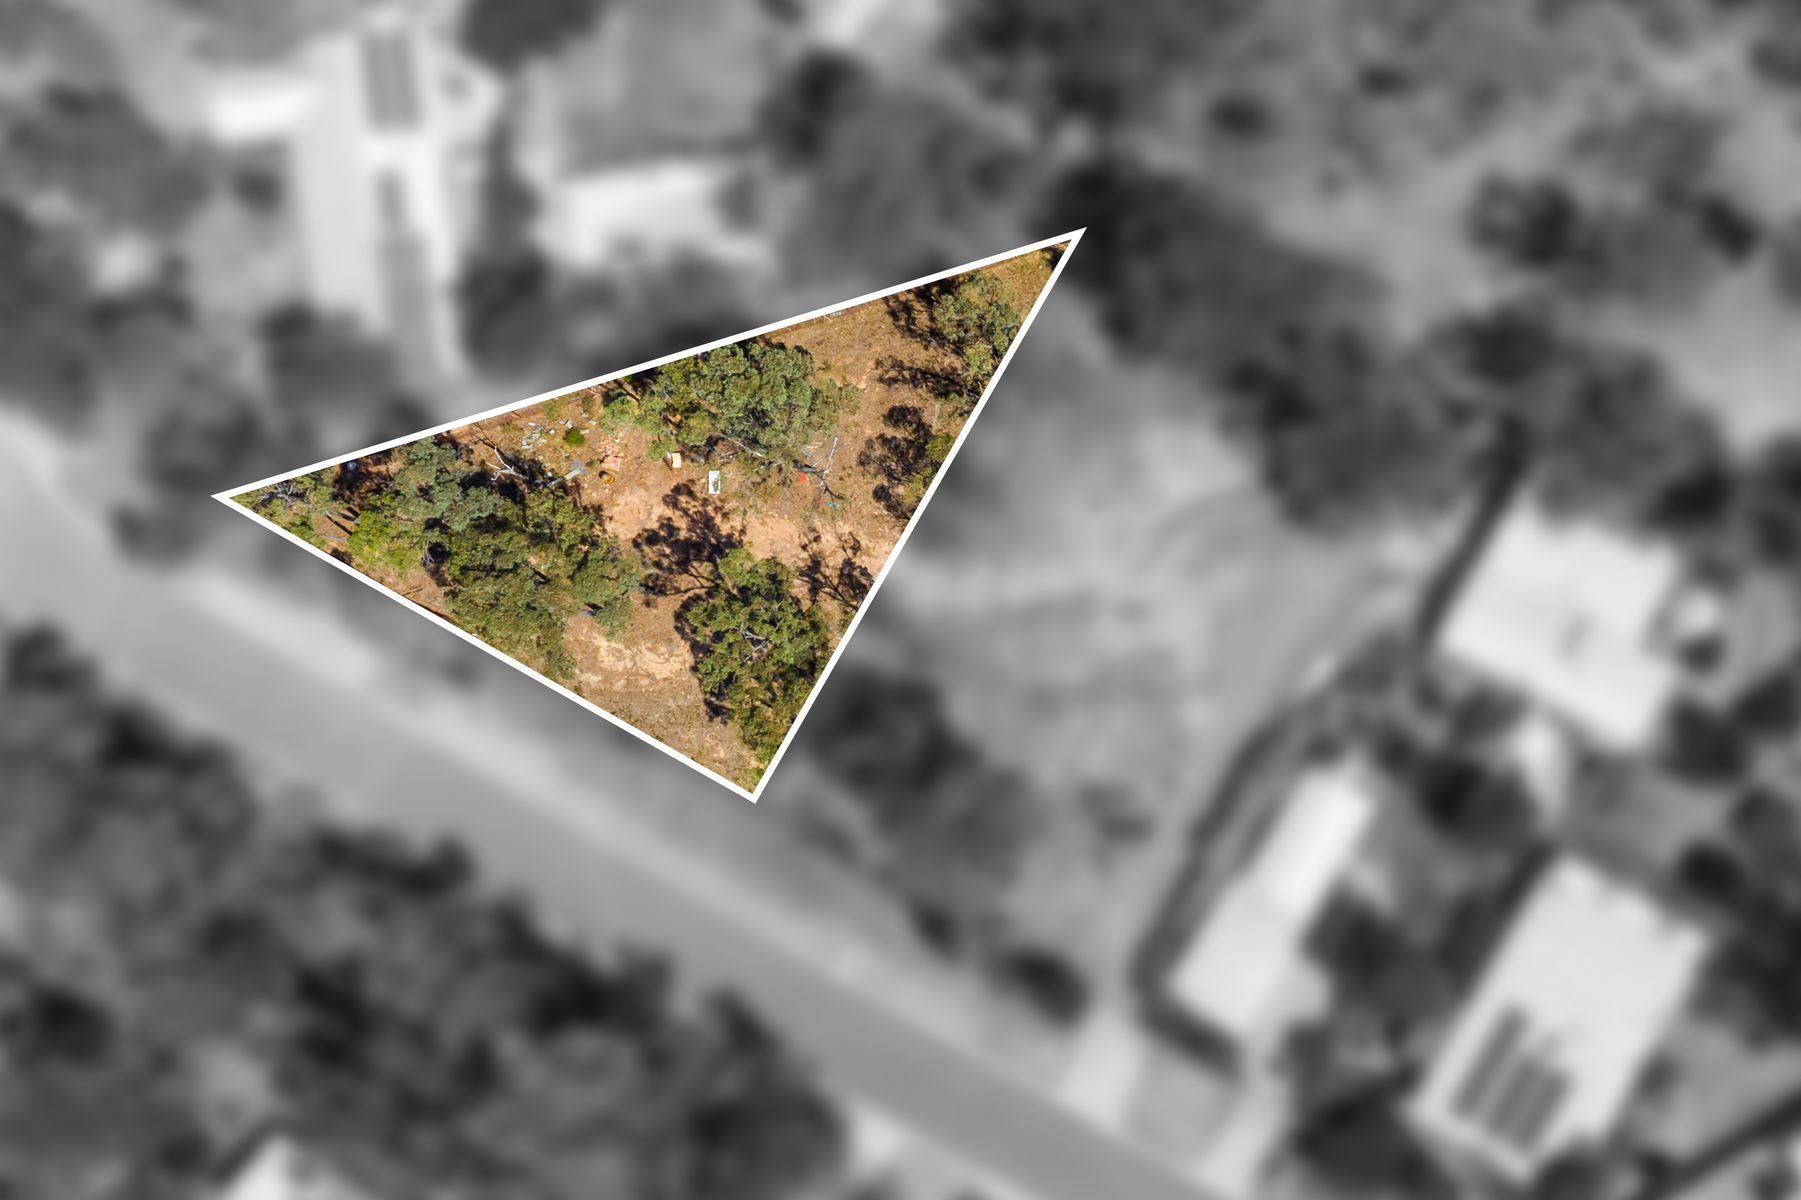 Lot 1/30 Kendall Street, Spring Gully, VIC 3550